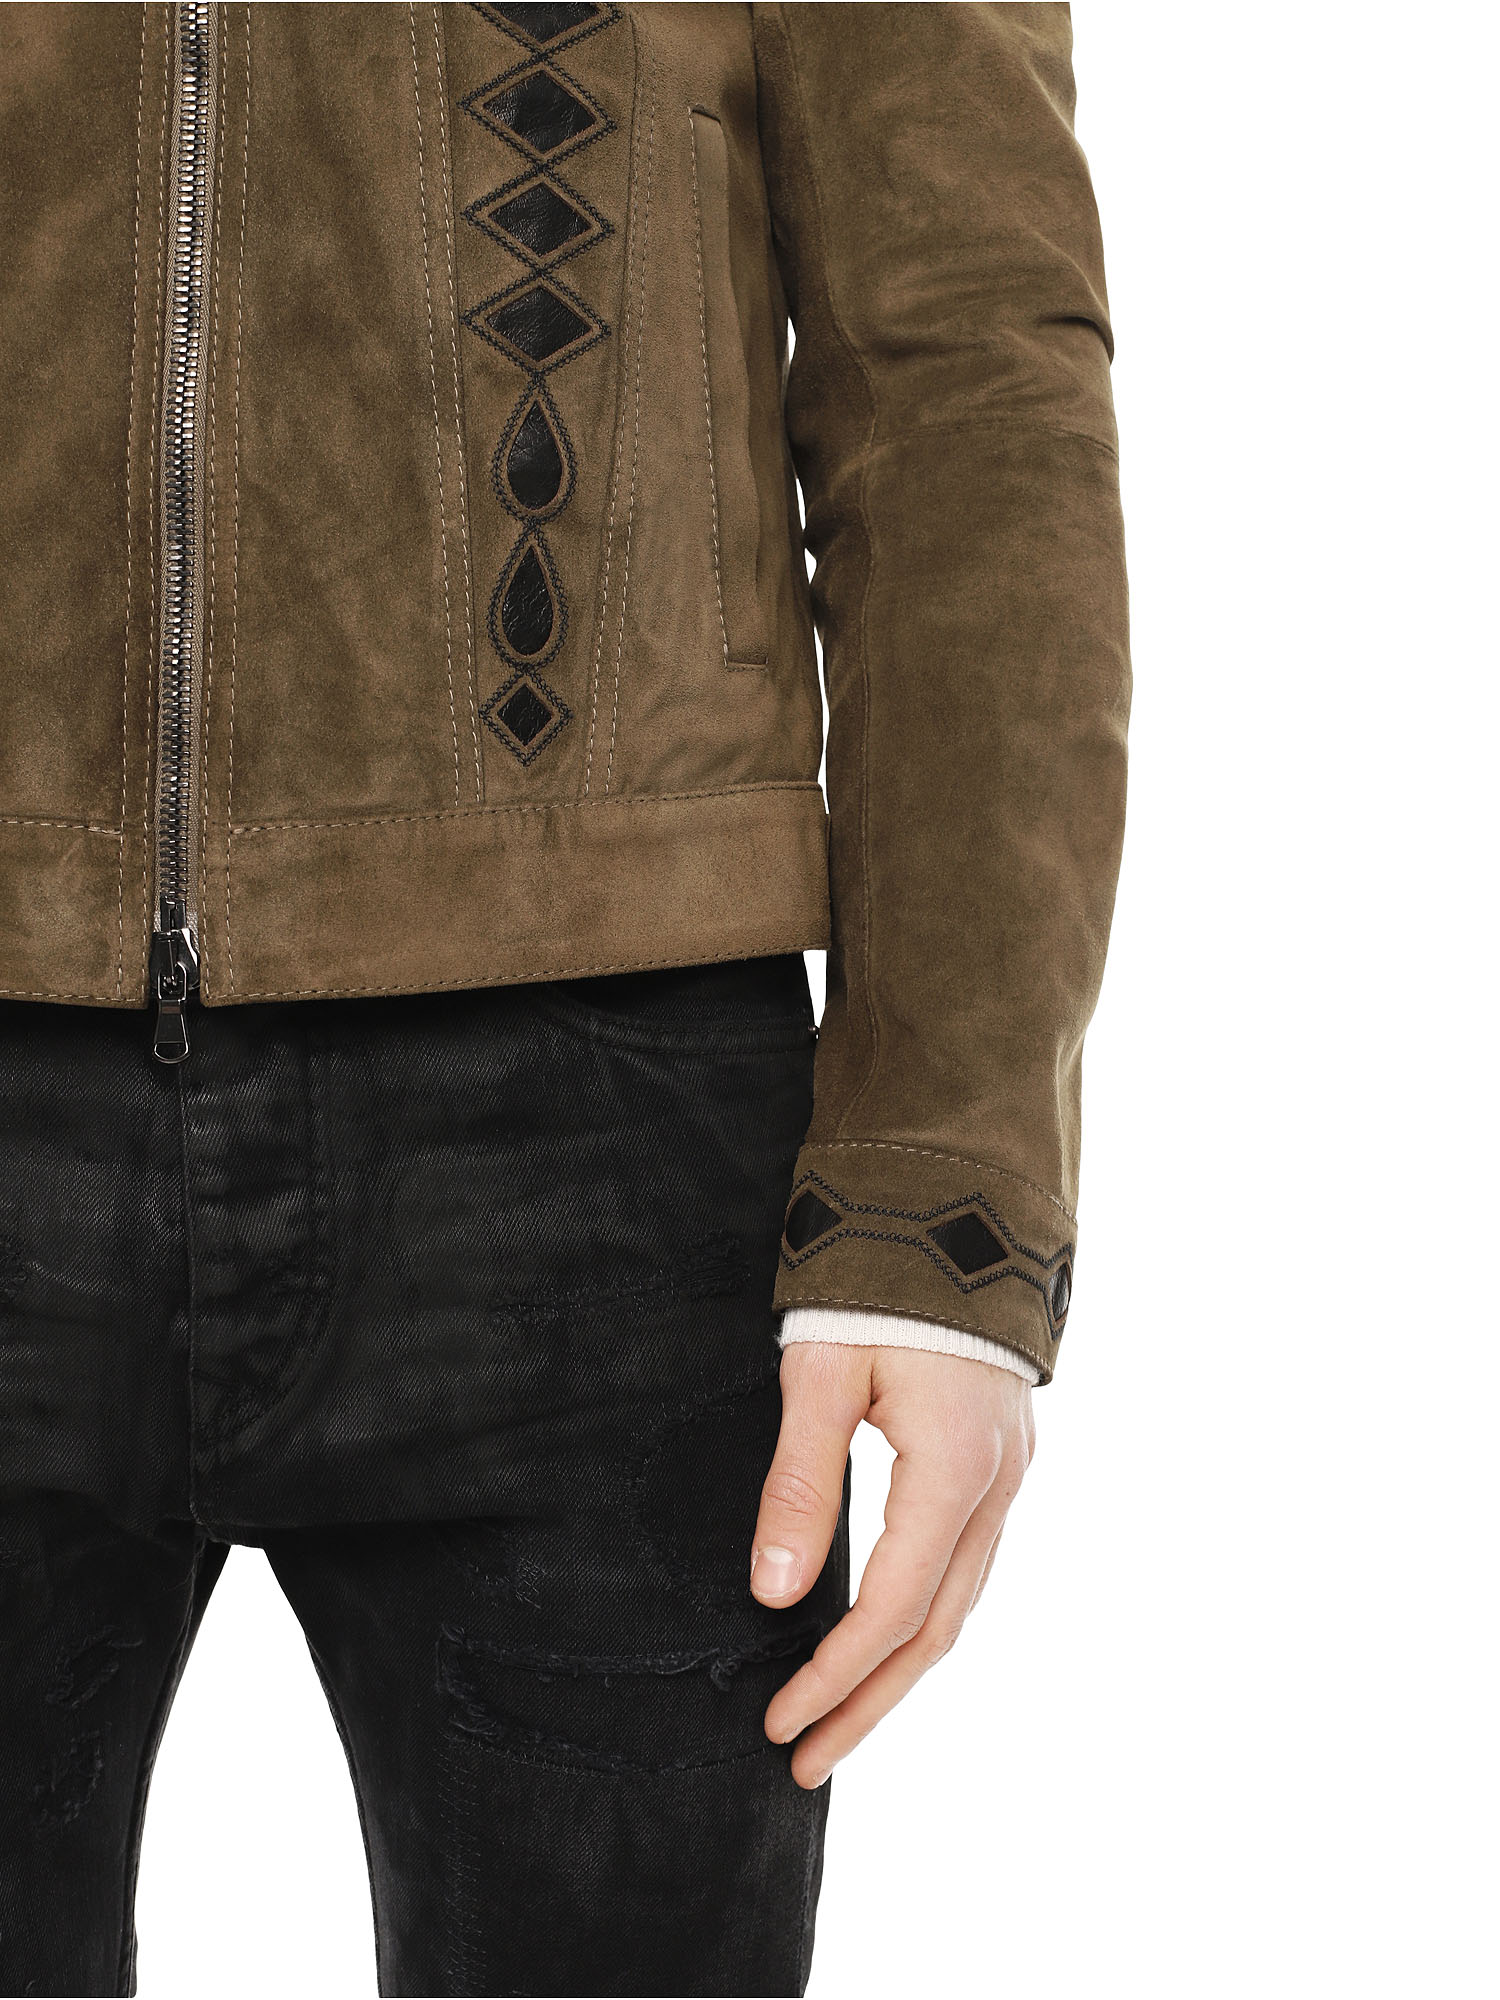 Diesel - LYRICH,  - Leather jackets - Image 6